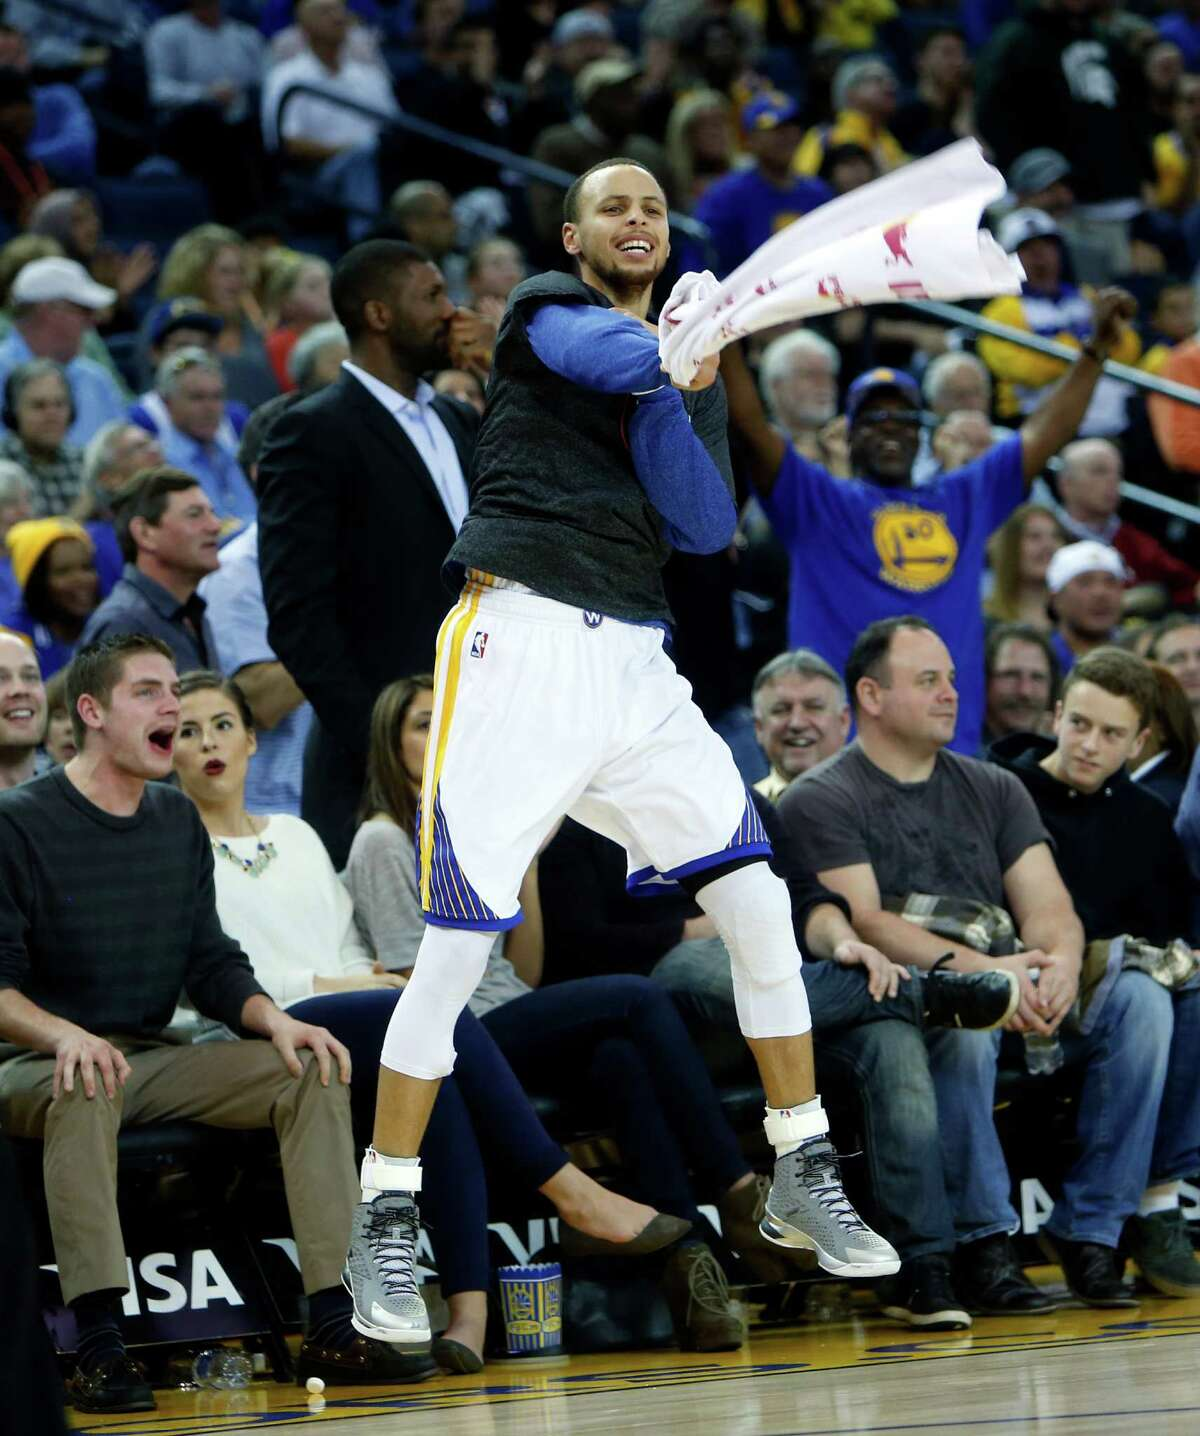 Golden State Warriors' Stephen Curry enjoys a block by rookie James Michael McAdoo in 4th quarter of Warriors' 122-79 win over the Denver Nuggets during NBA game at Oracle Arena in Oakland, Calif. on Monday, January 19, 2015.